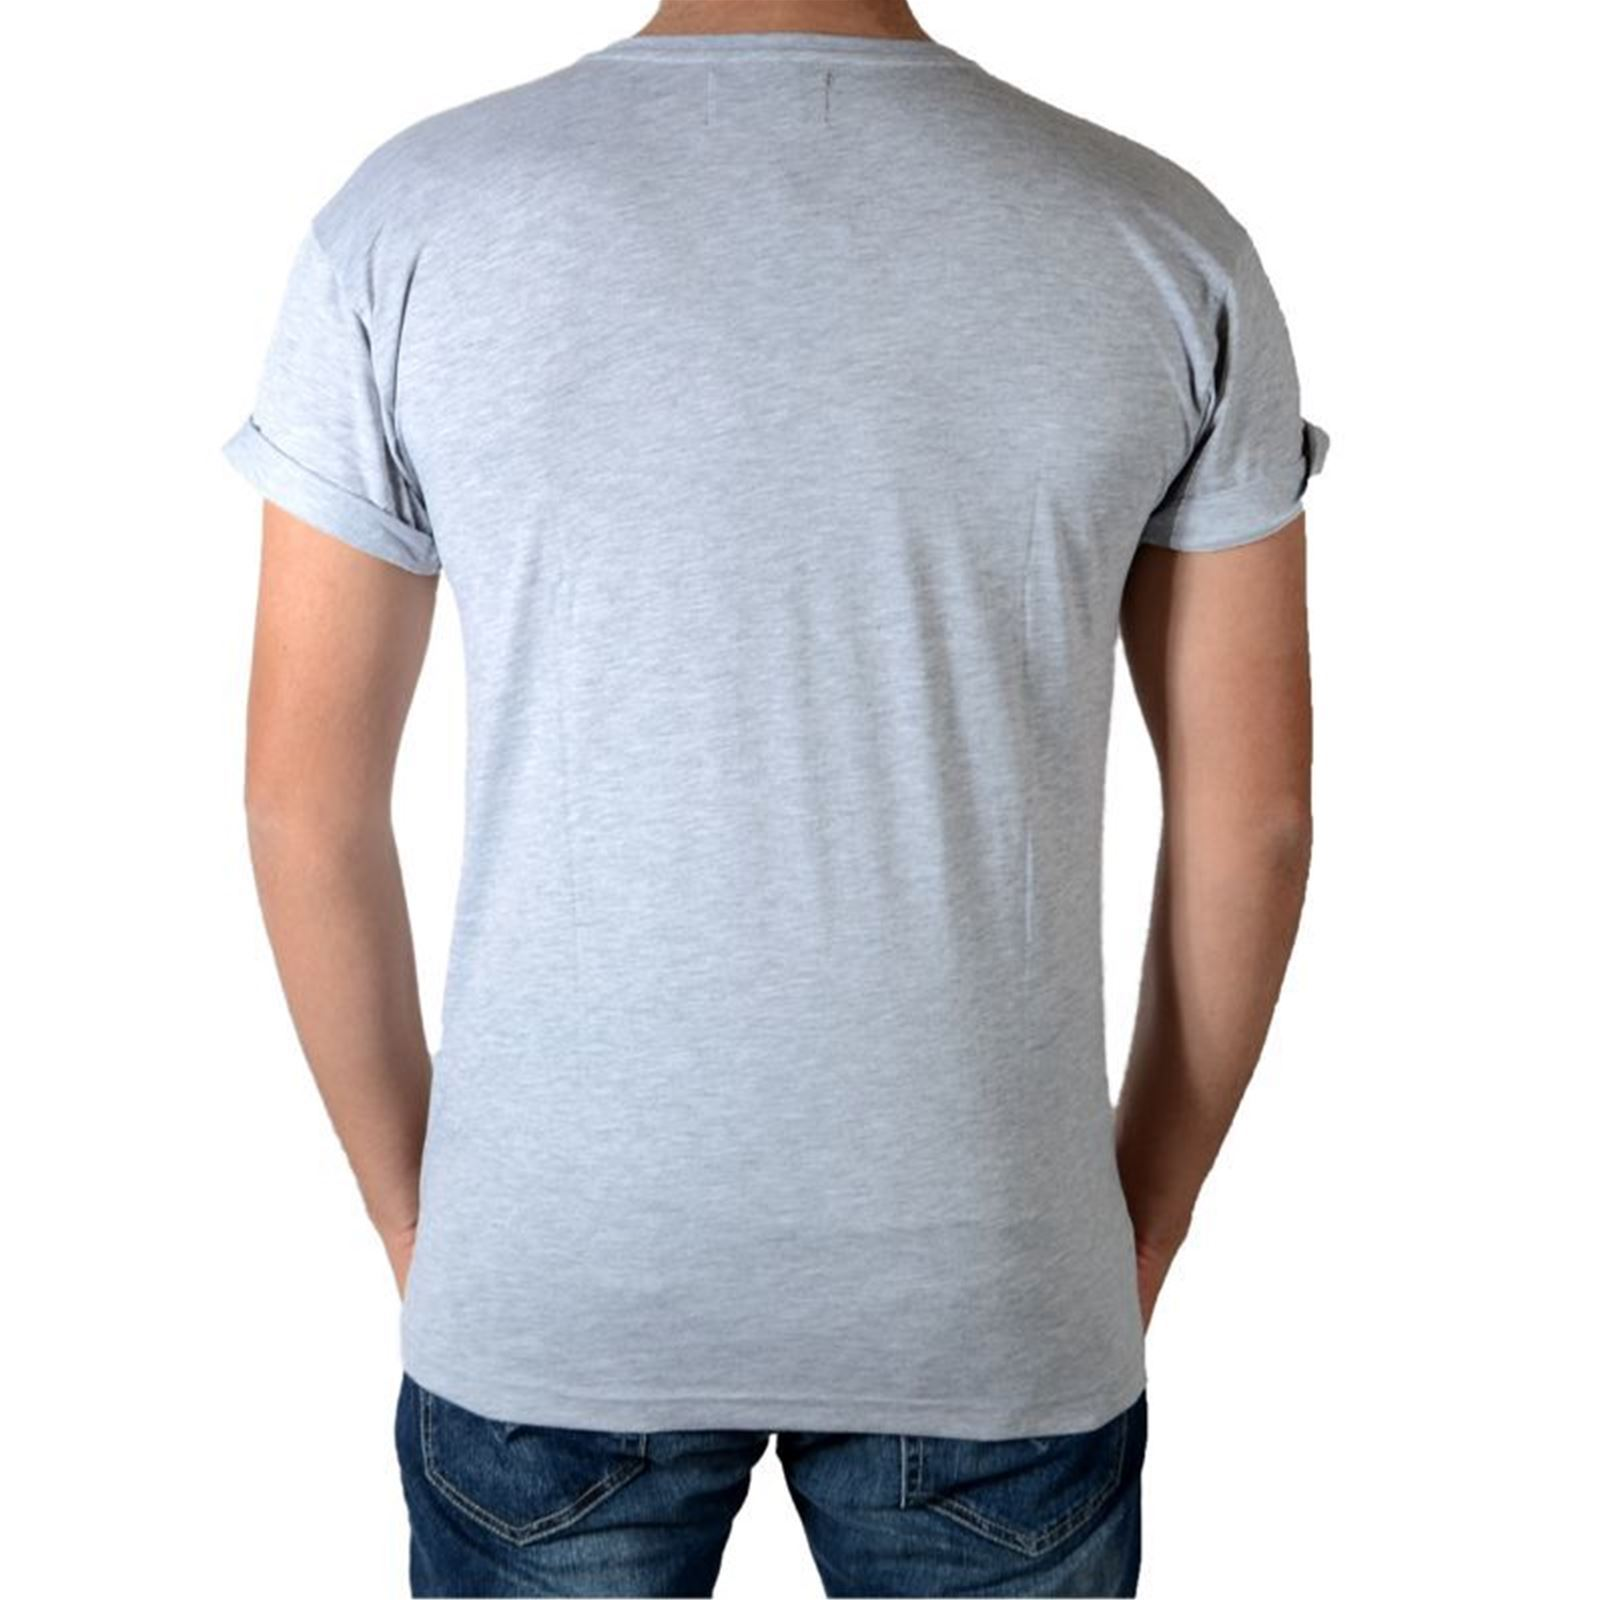 T Homme Celebry shirt Tees CourtesGris Manches V dBxtQsrCho